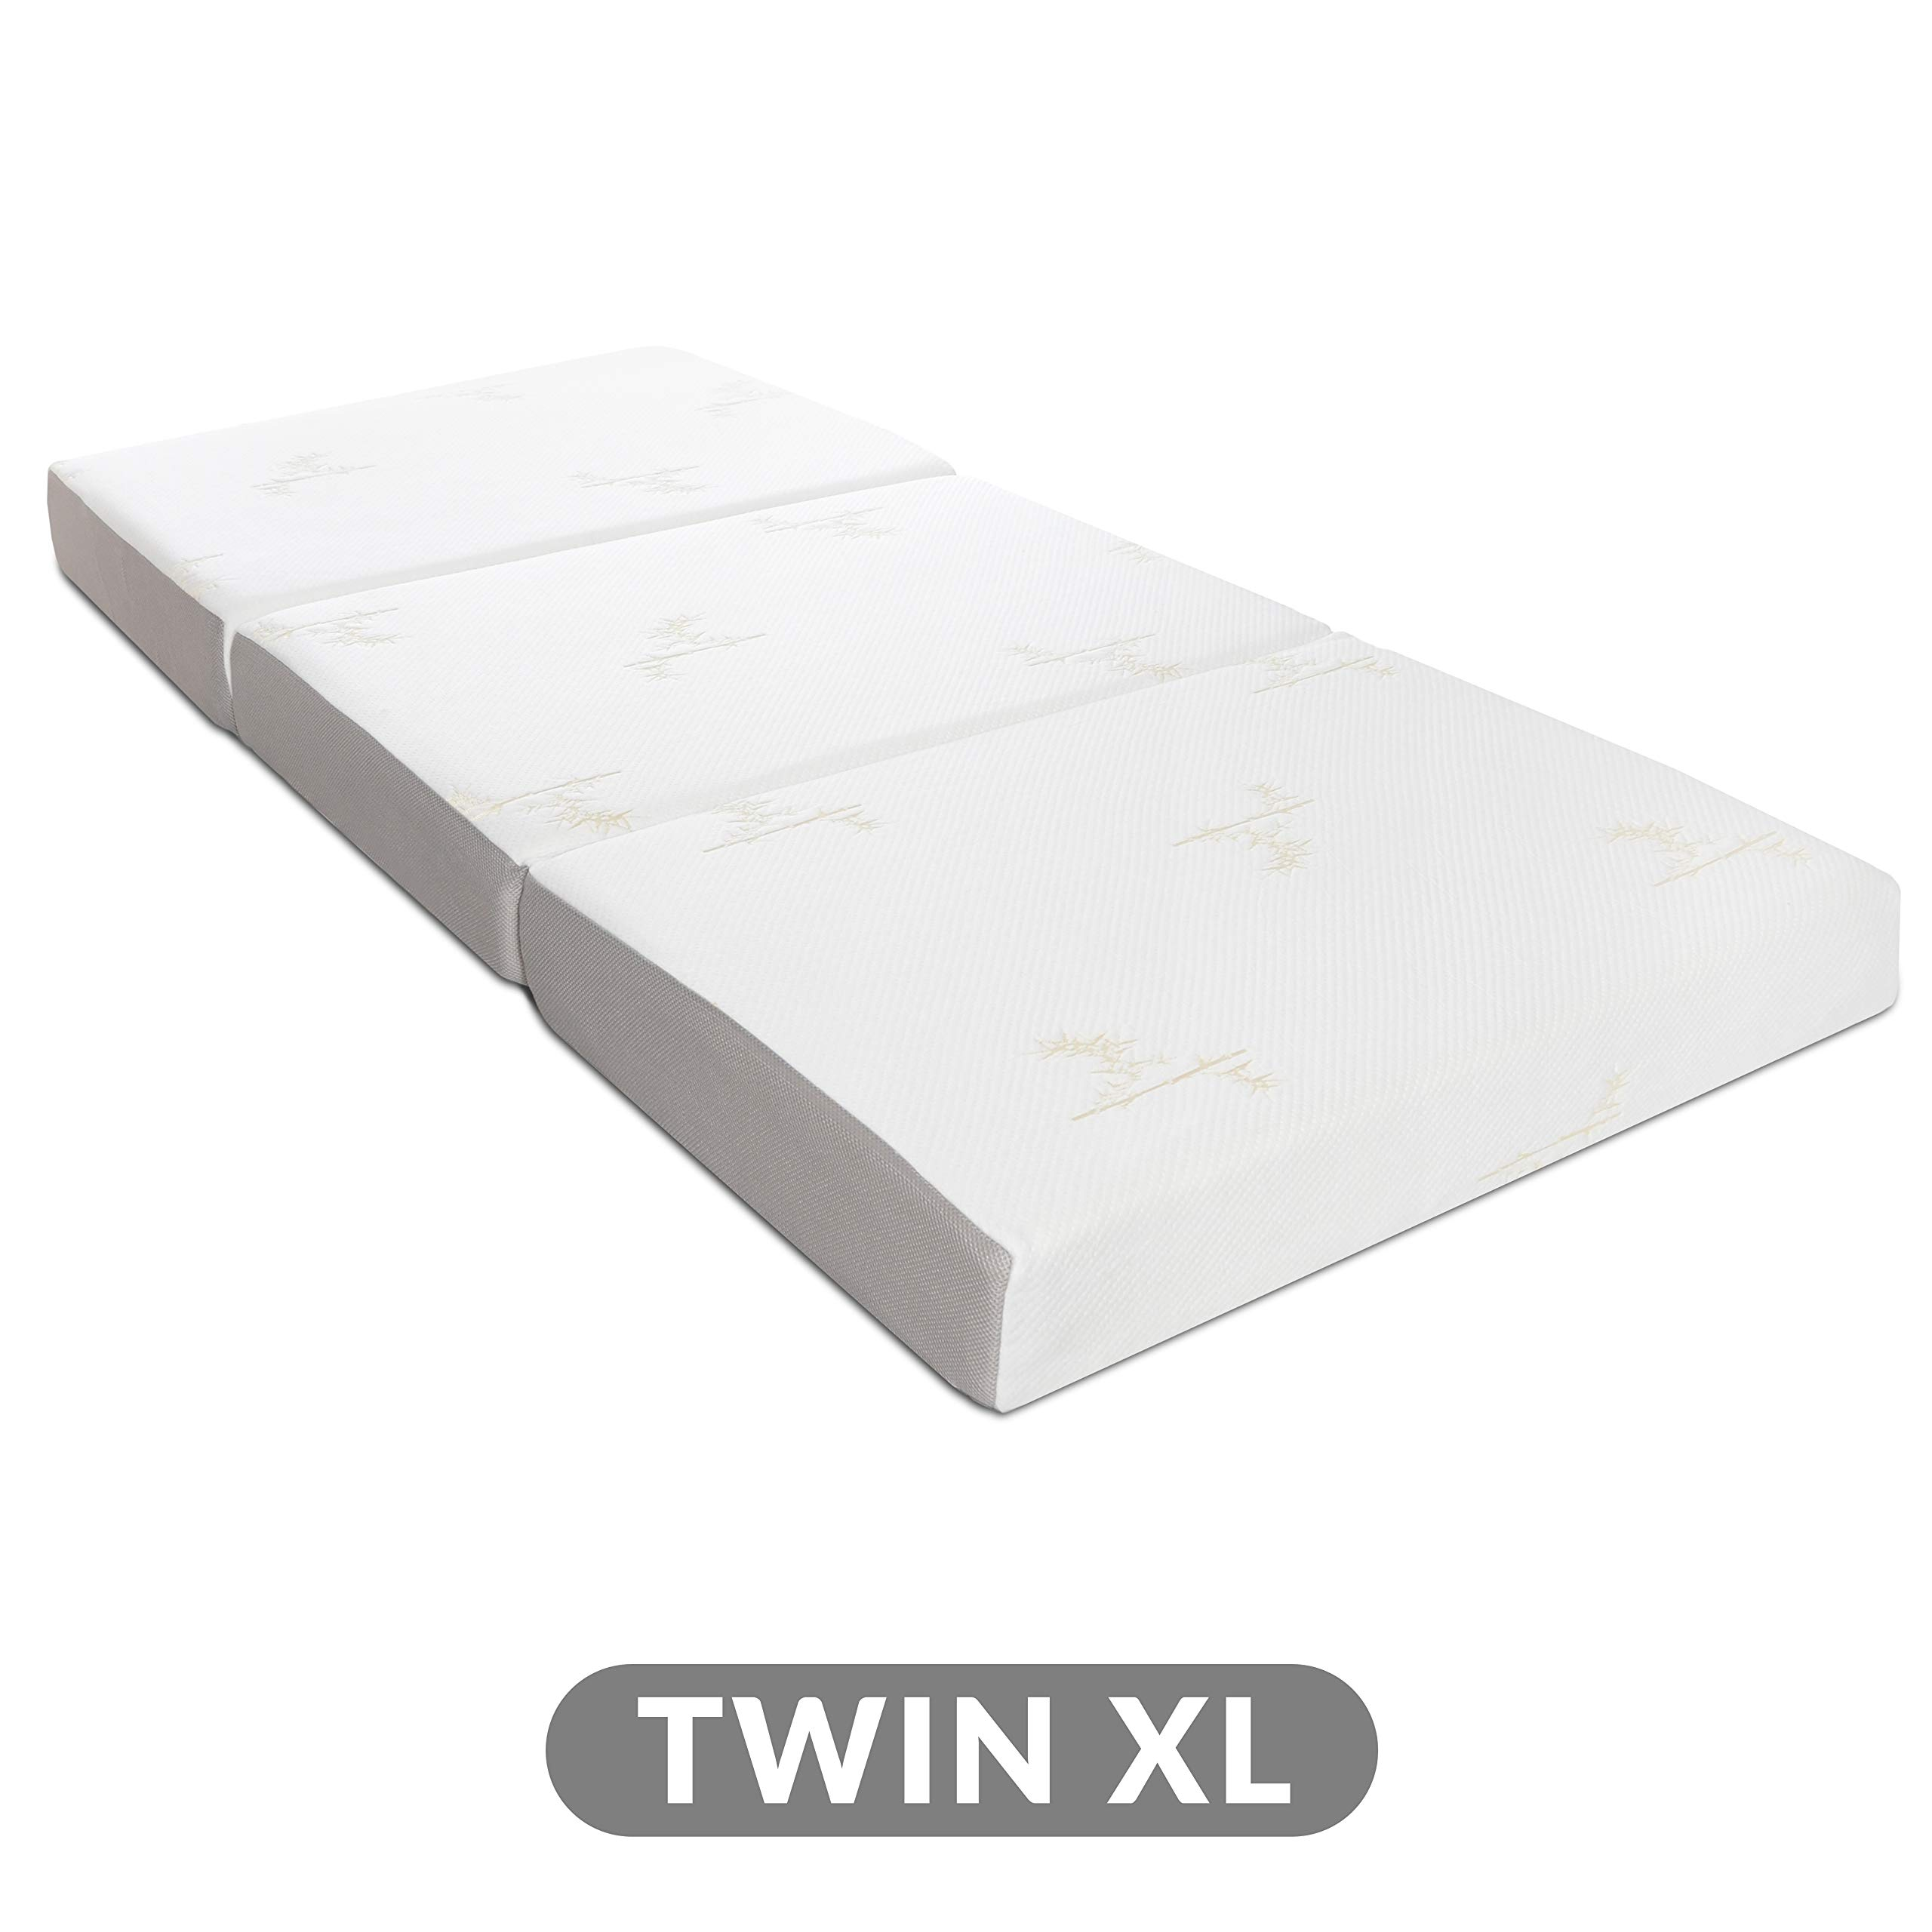 Milliard Tri Folding Memory Foam Mattress with Washable Cover Twin XL (78 inches x 38 inches x 6 inches) by Milliard